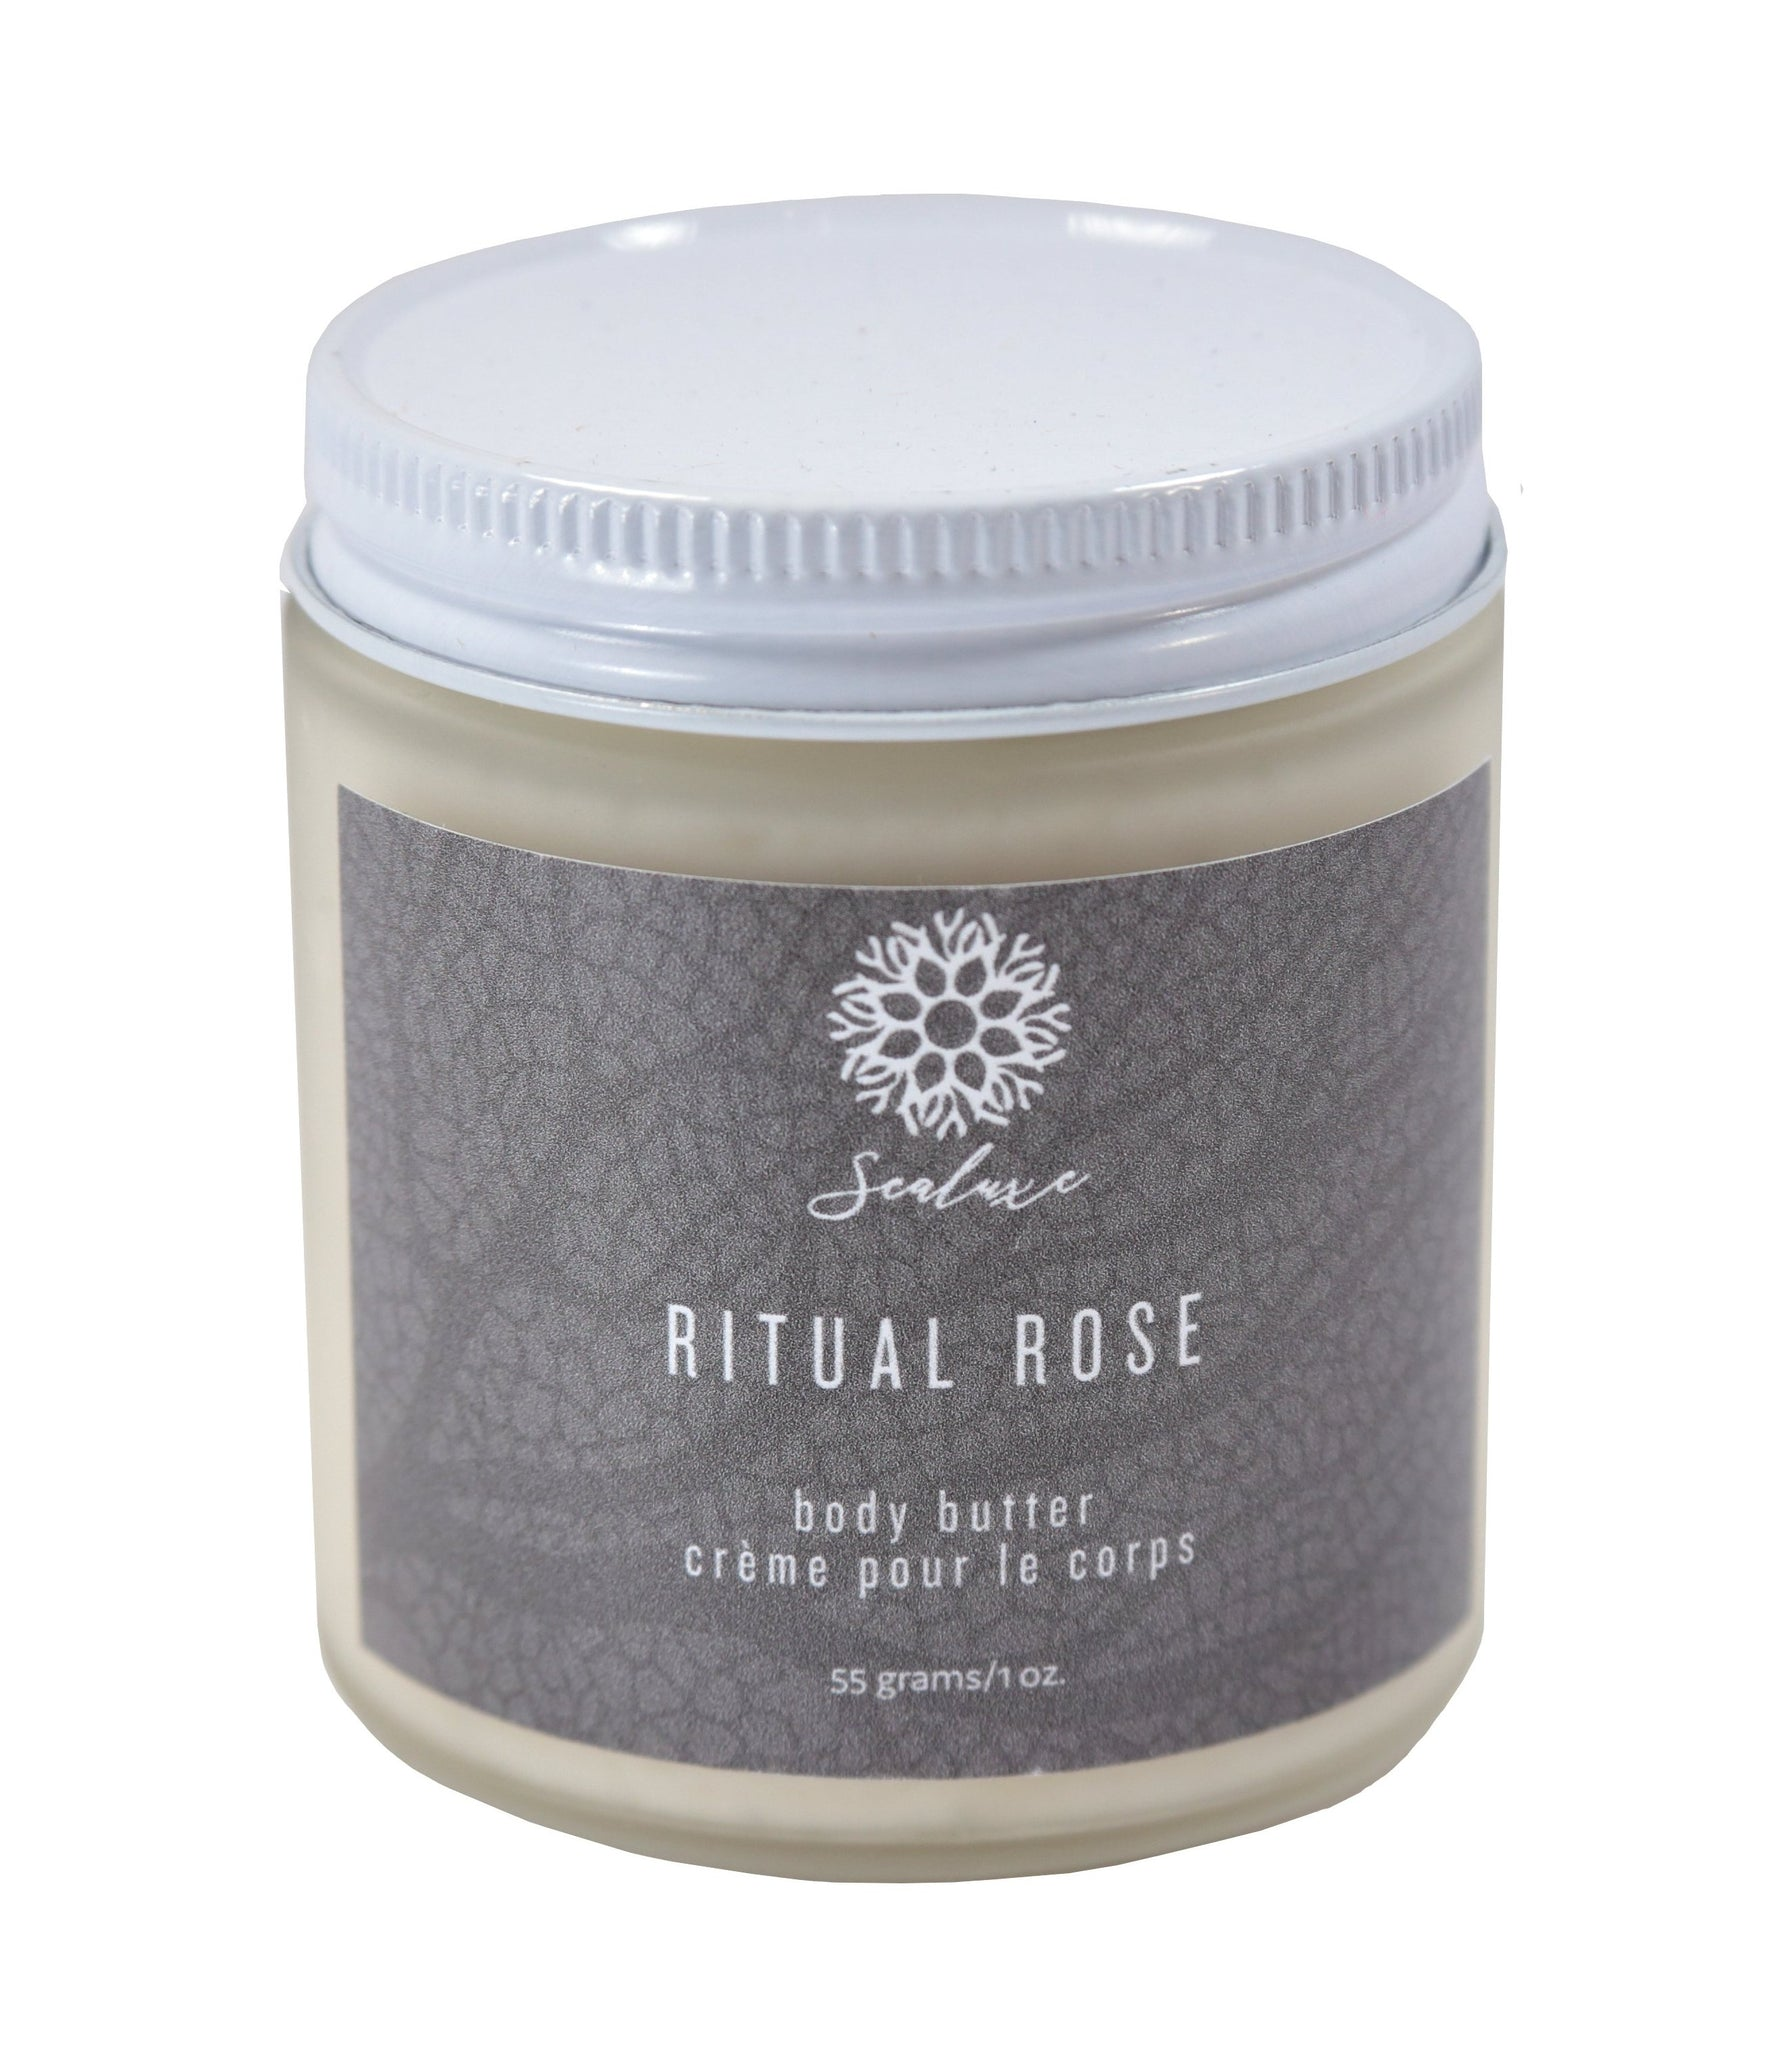 Ritual Rose Body Butter